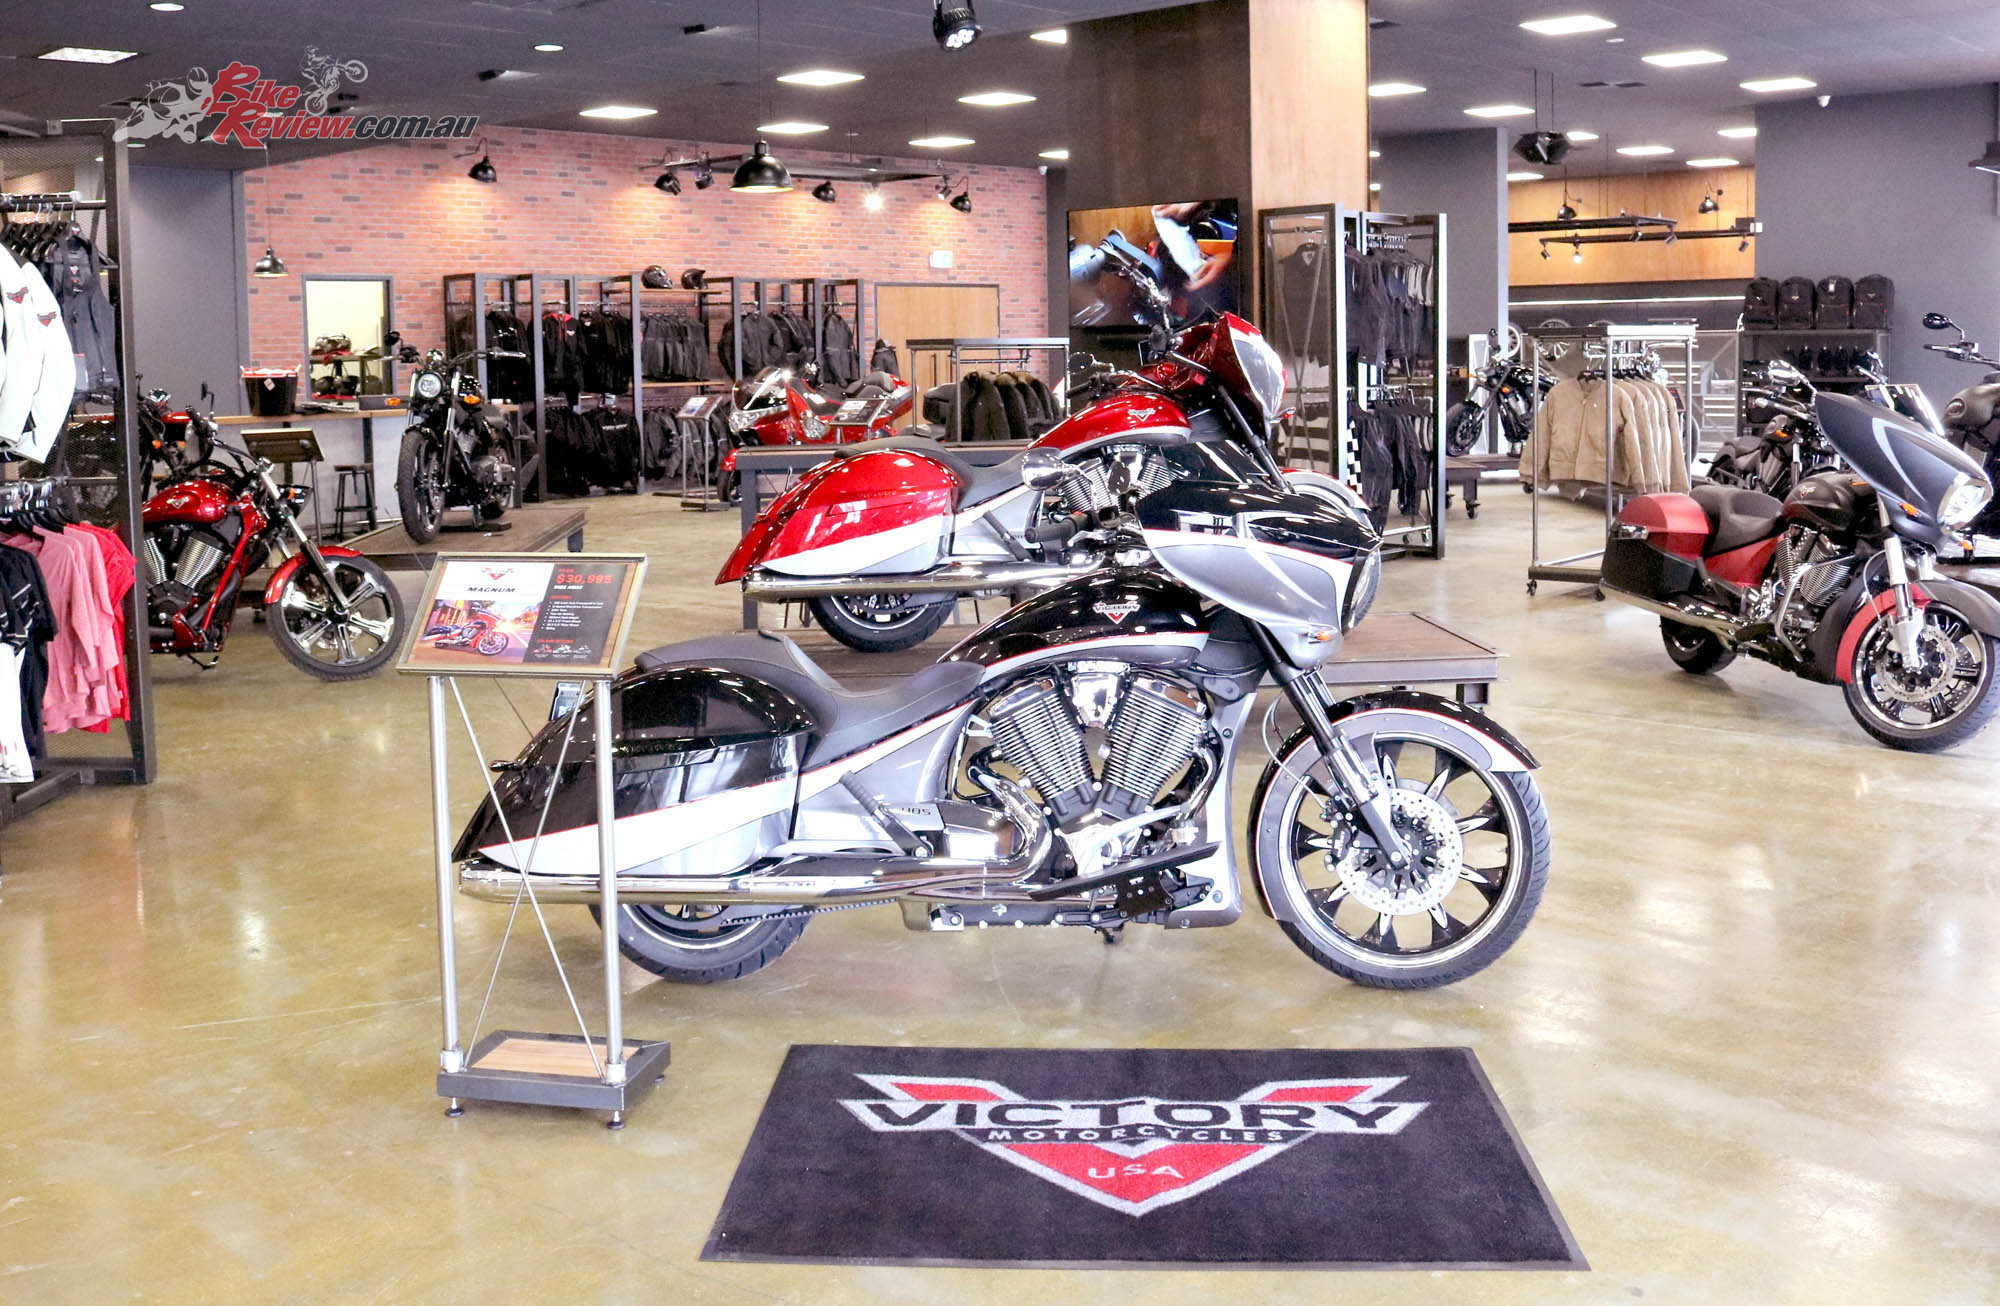 New Flagship Indian and Victory Store, Perth - Bike Review